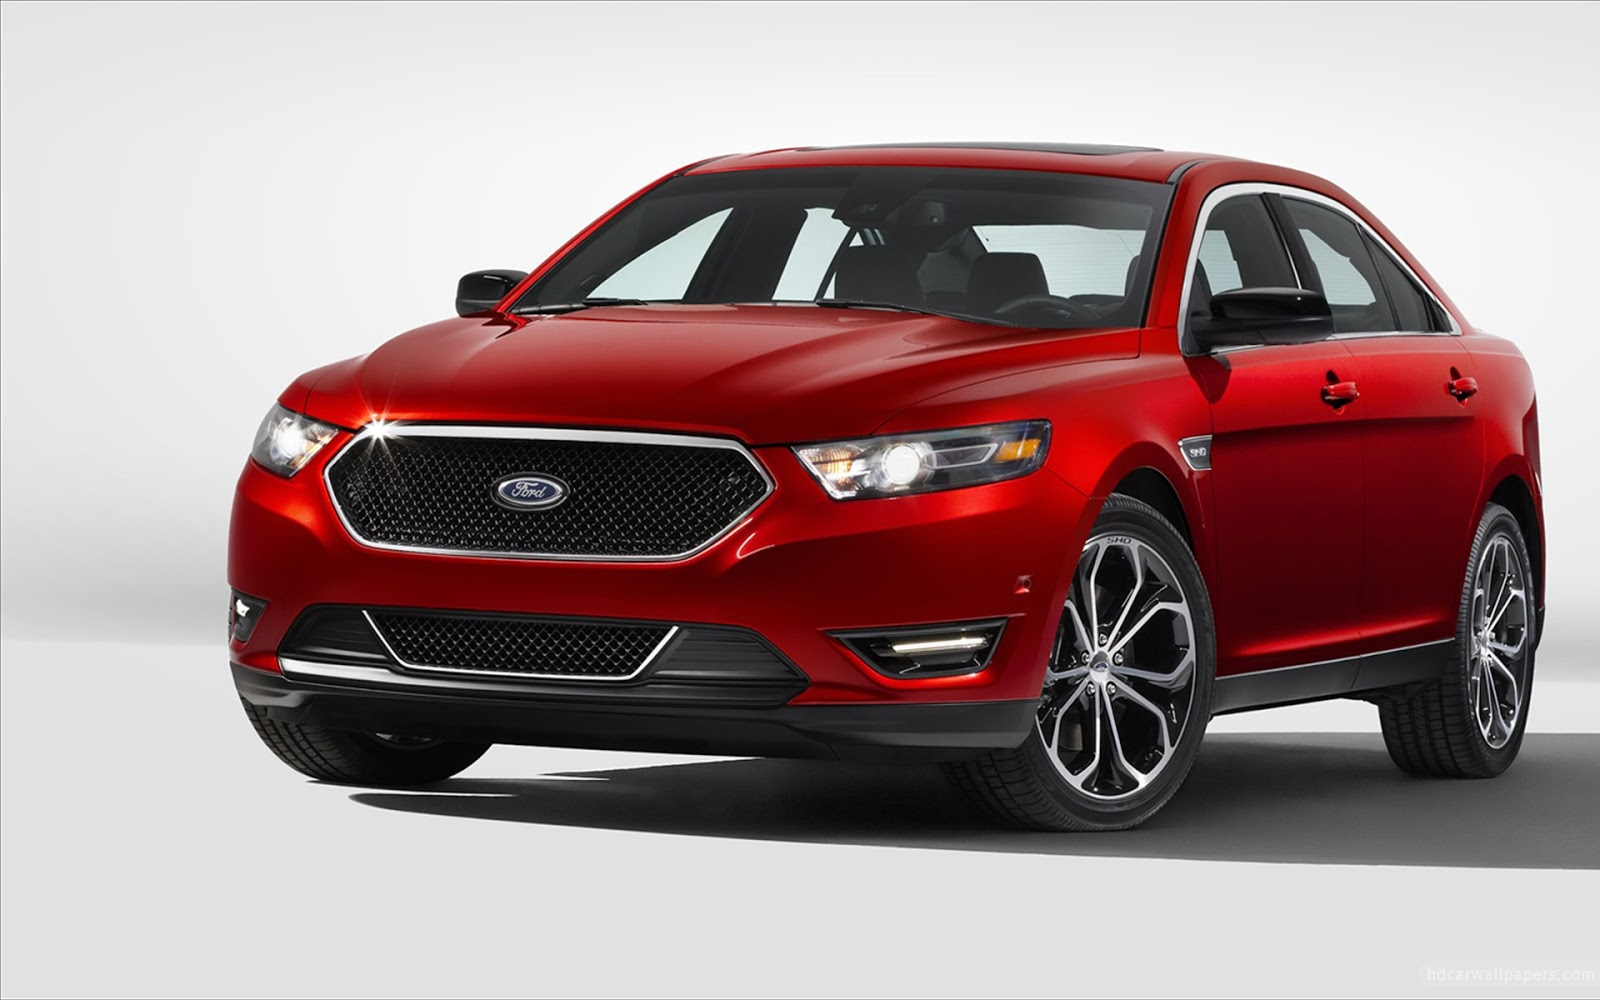 wallpapers desktop wallpapers 1080p 2013 ford taurus sho wallpapers. Black Bedroom Furniture Sets. Home Design Ideas